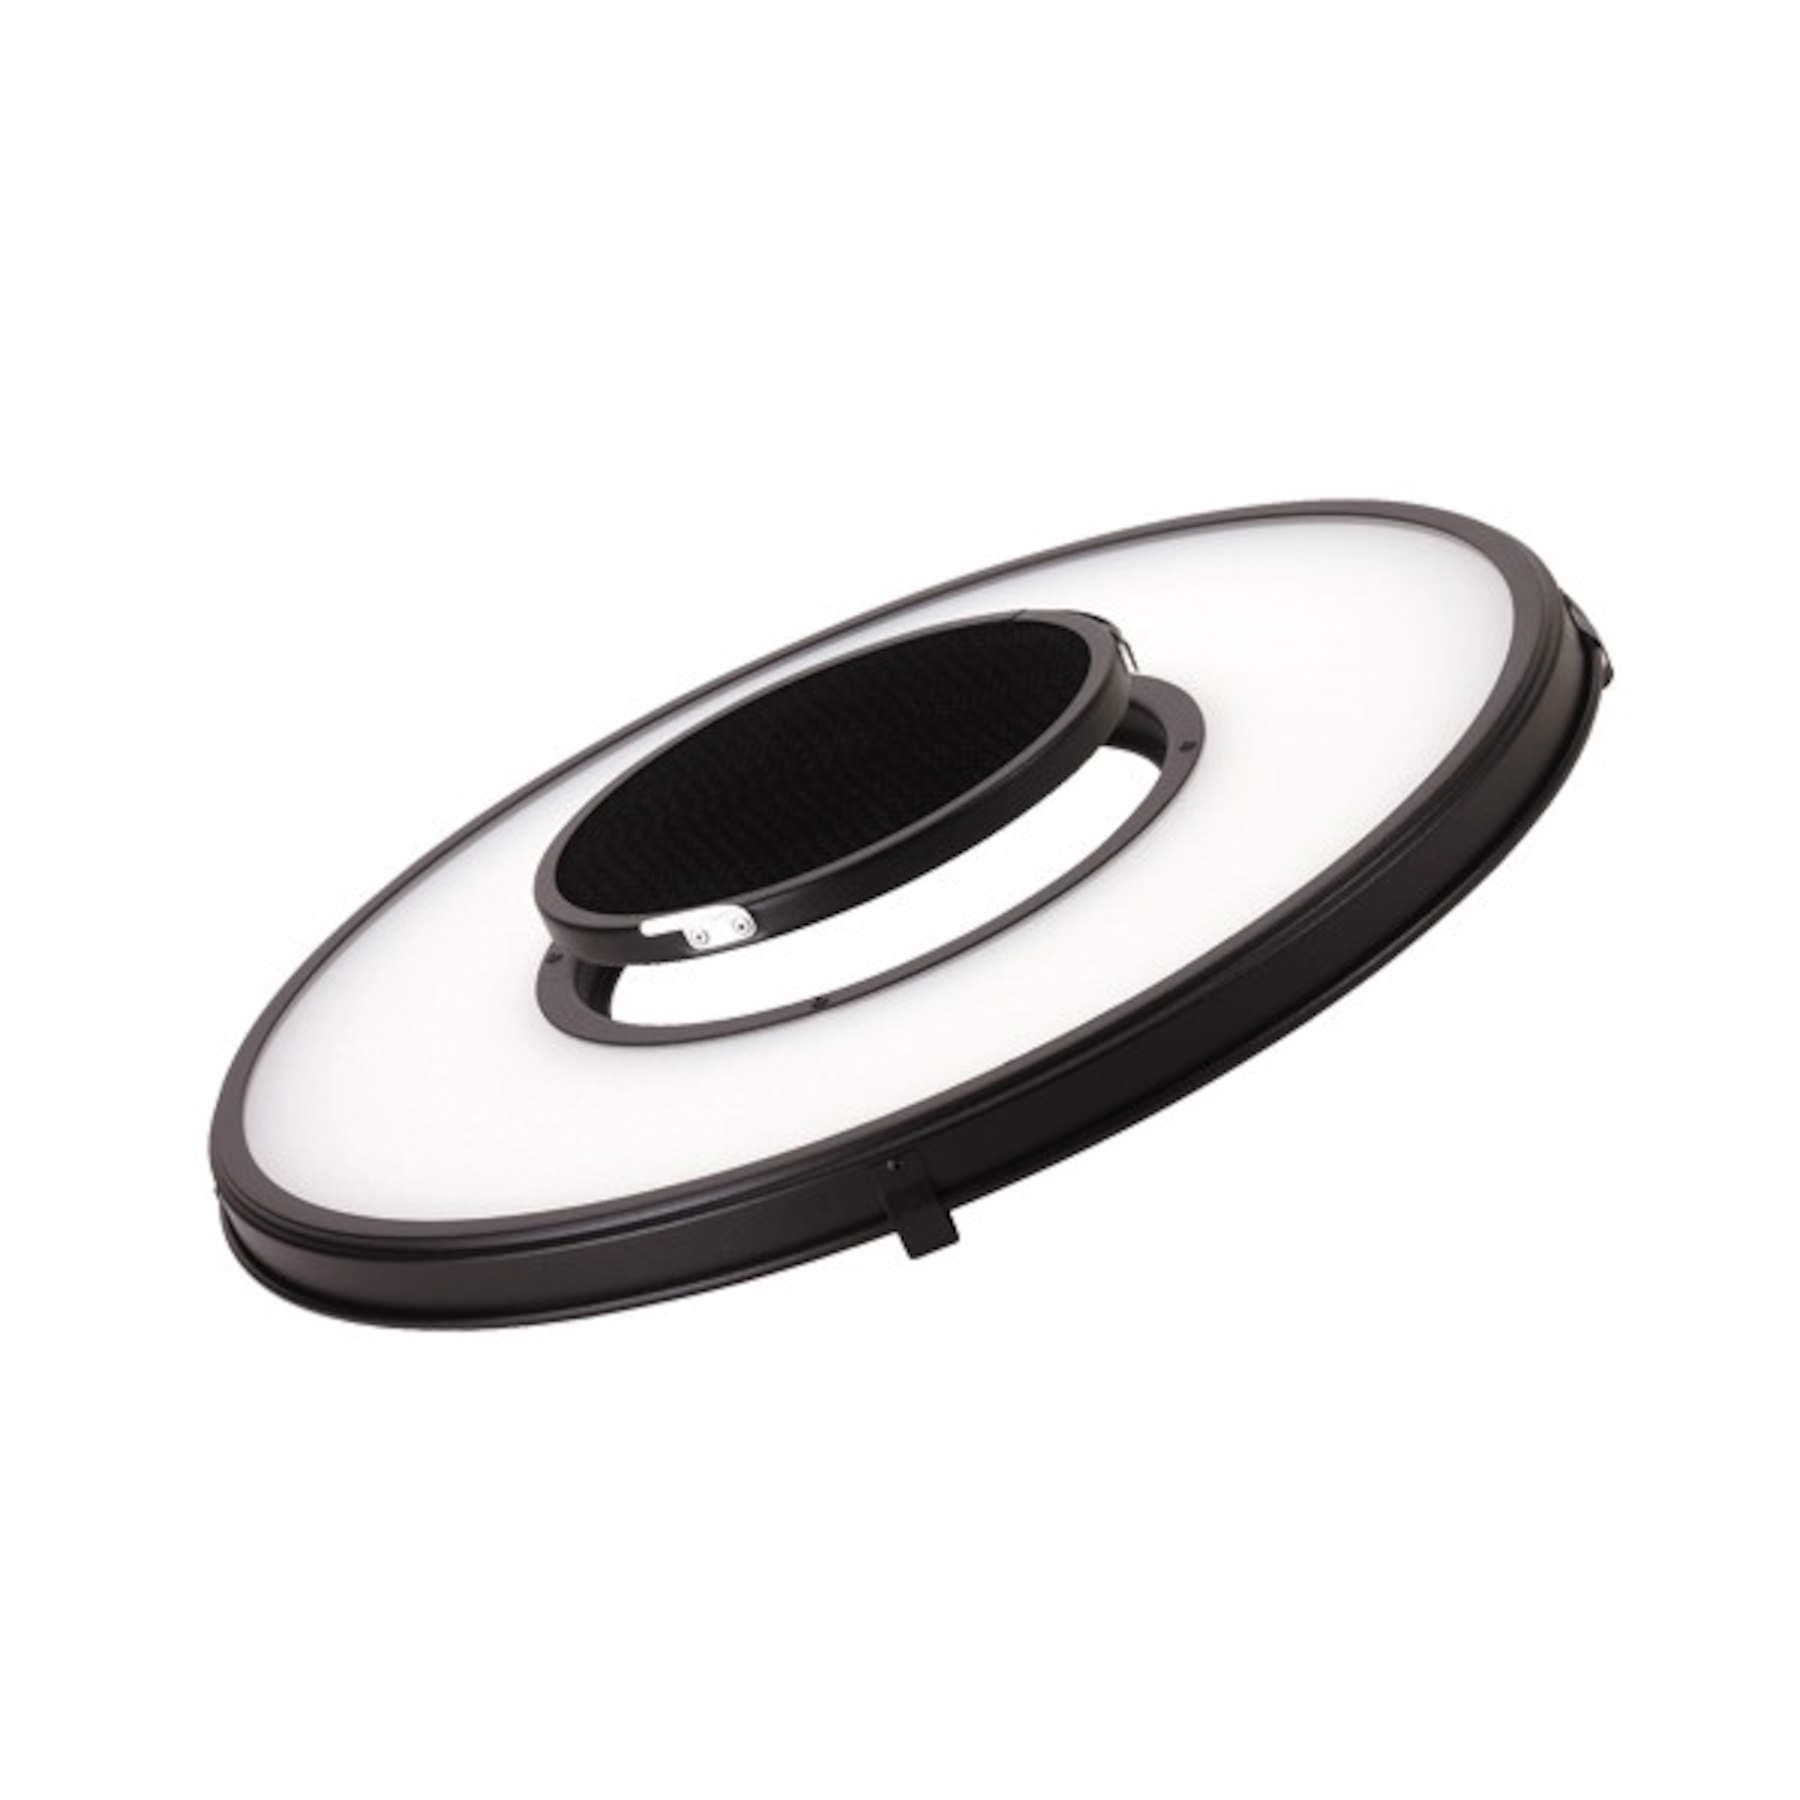 Bowens Grid Diffuser (for Soft